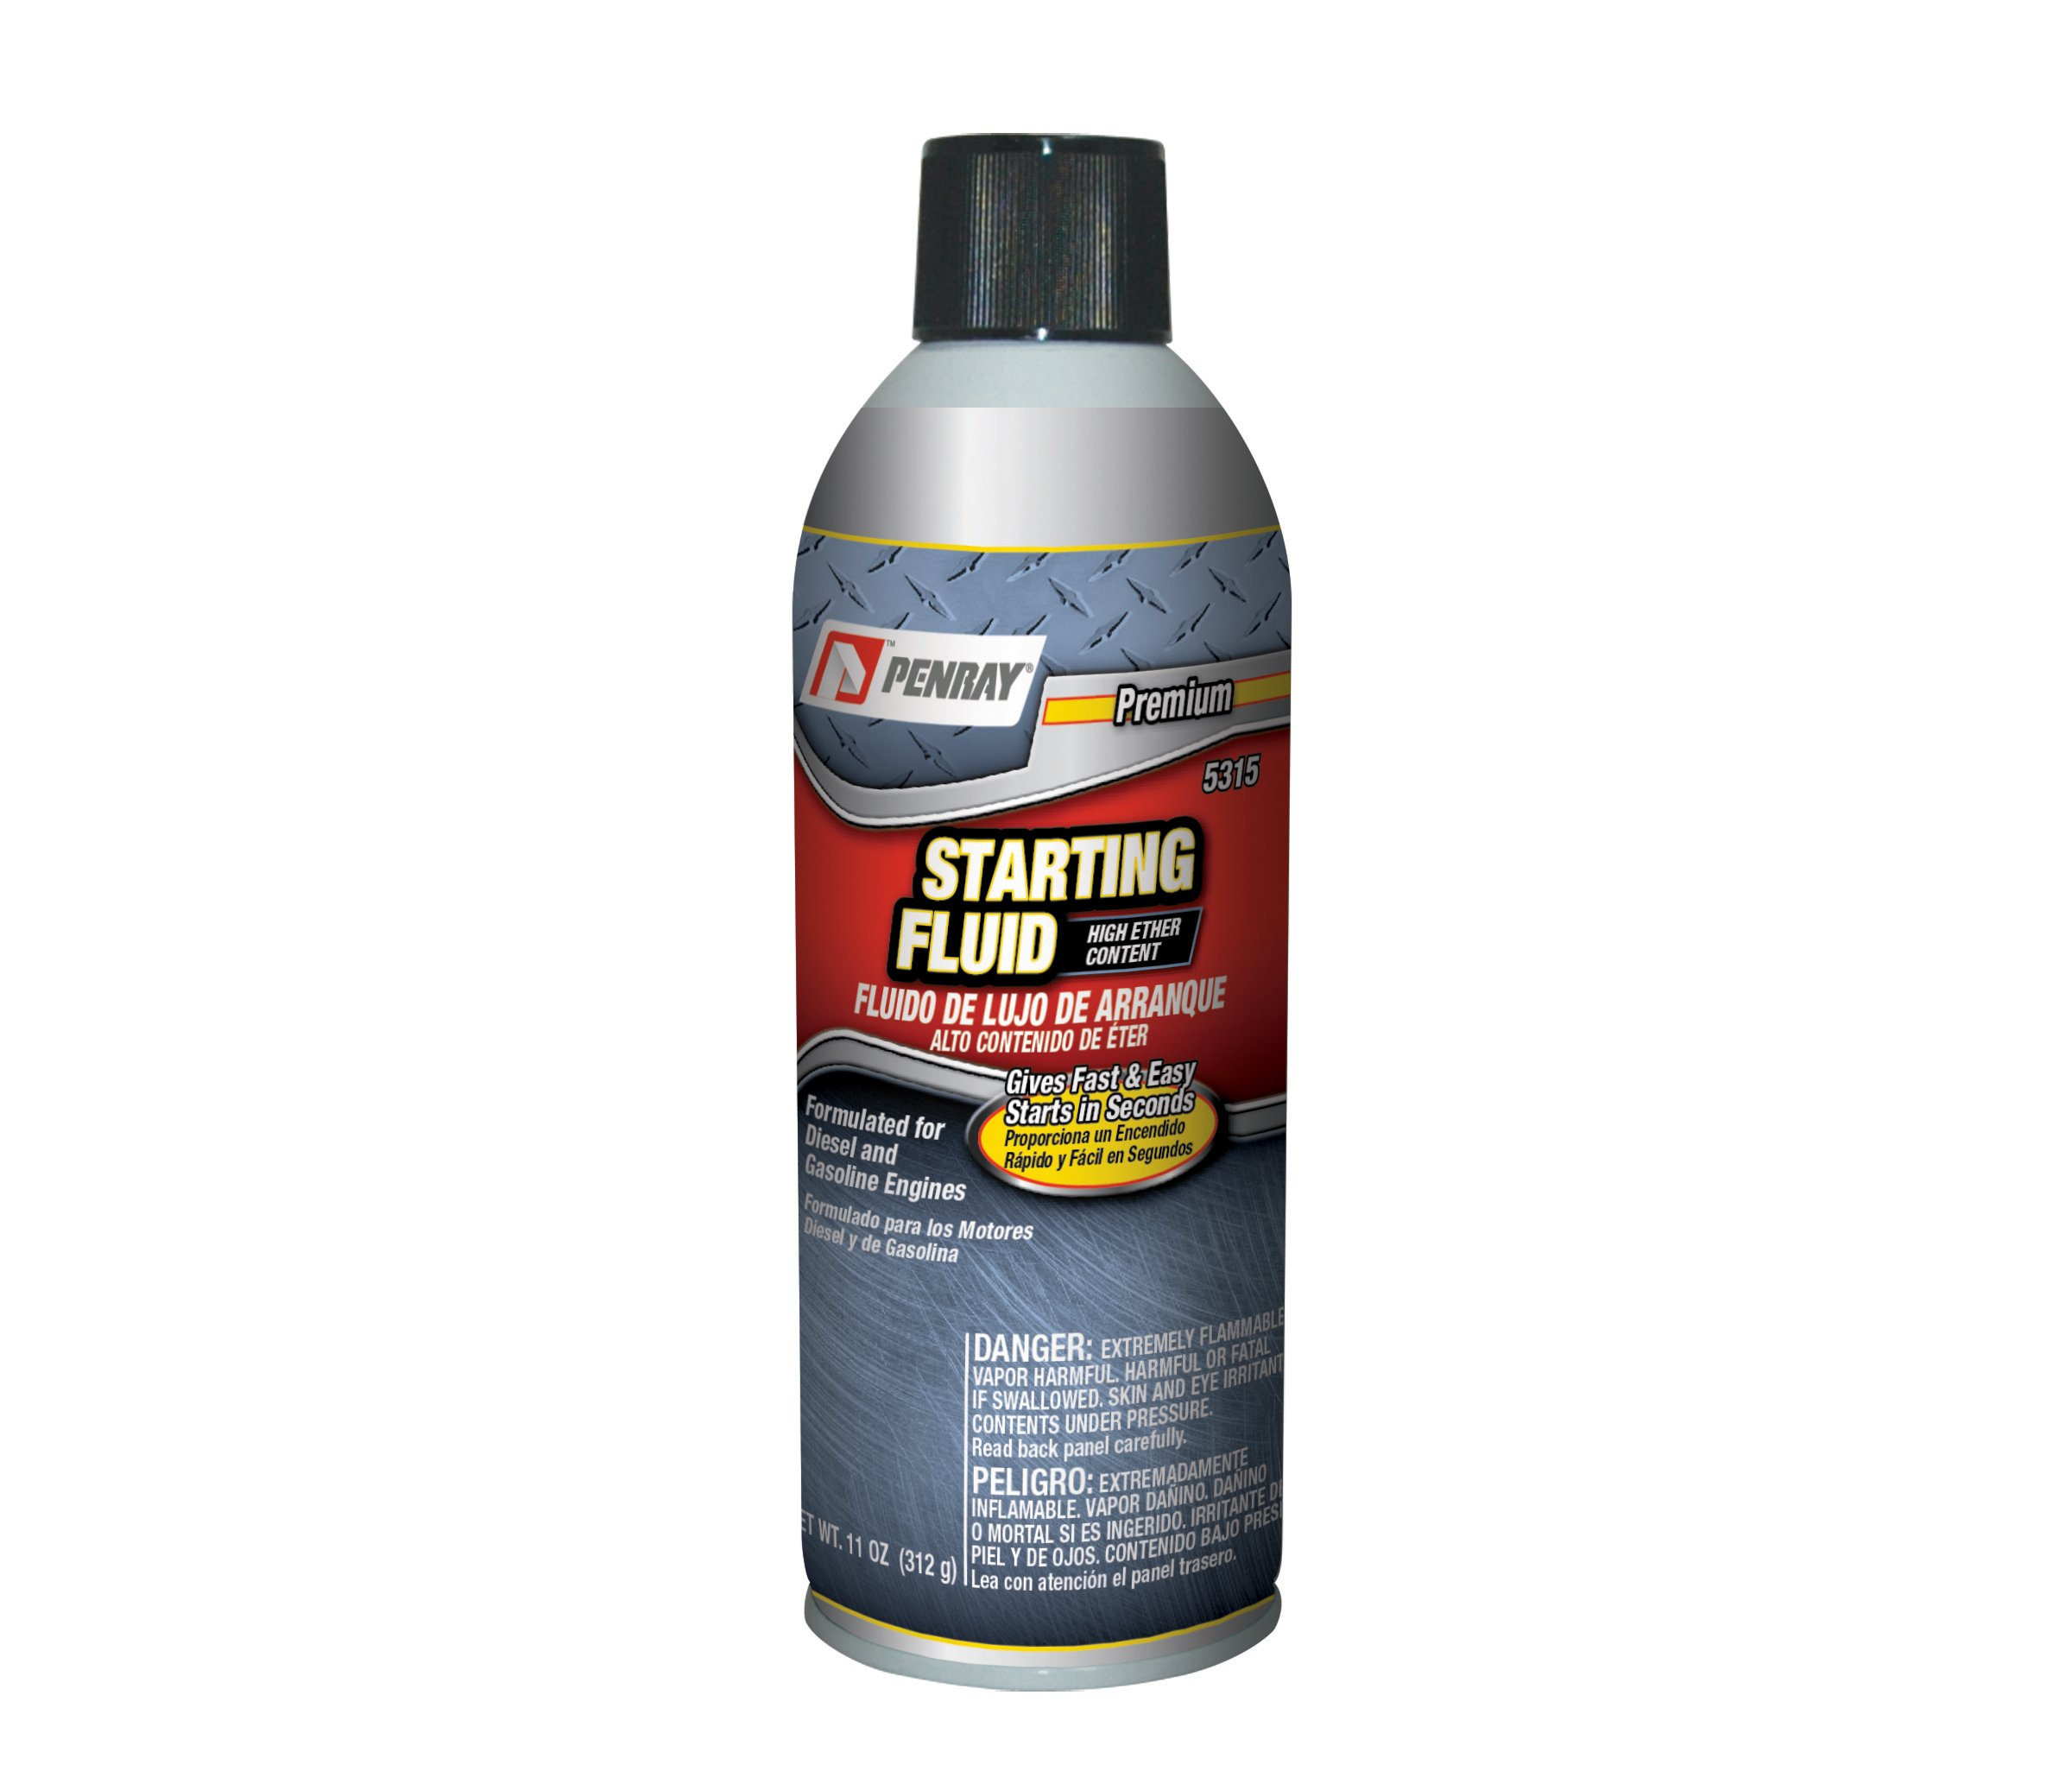 Penray 5315 High Ether Content Starting Fluid - 11-Ounce Aerosol Can by The Penray Companies